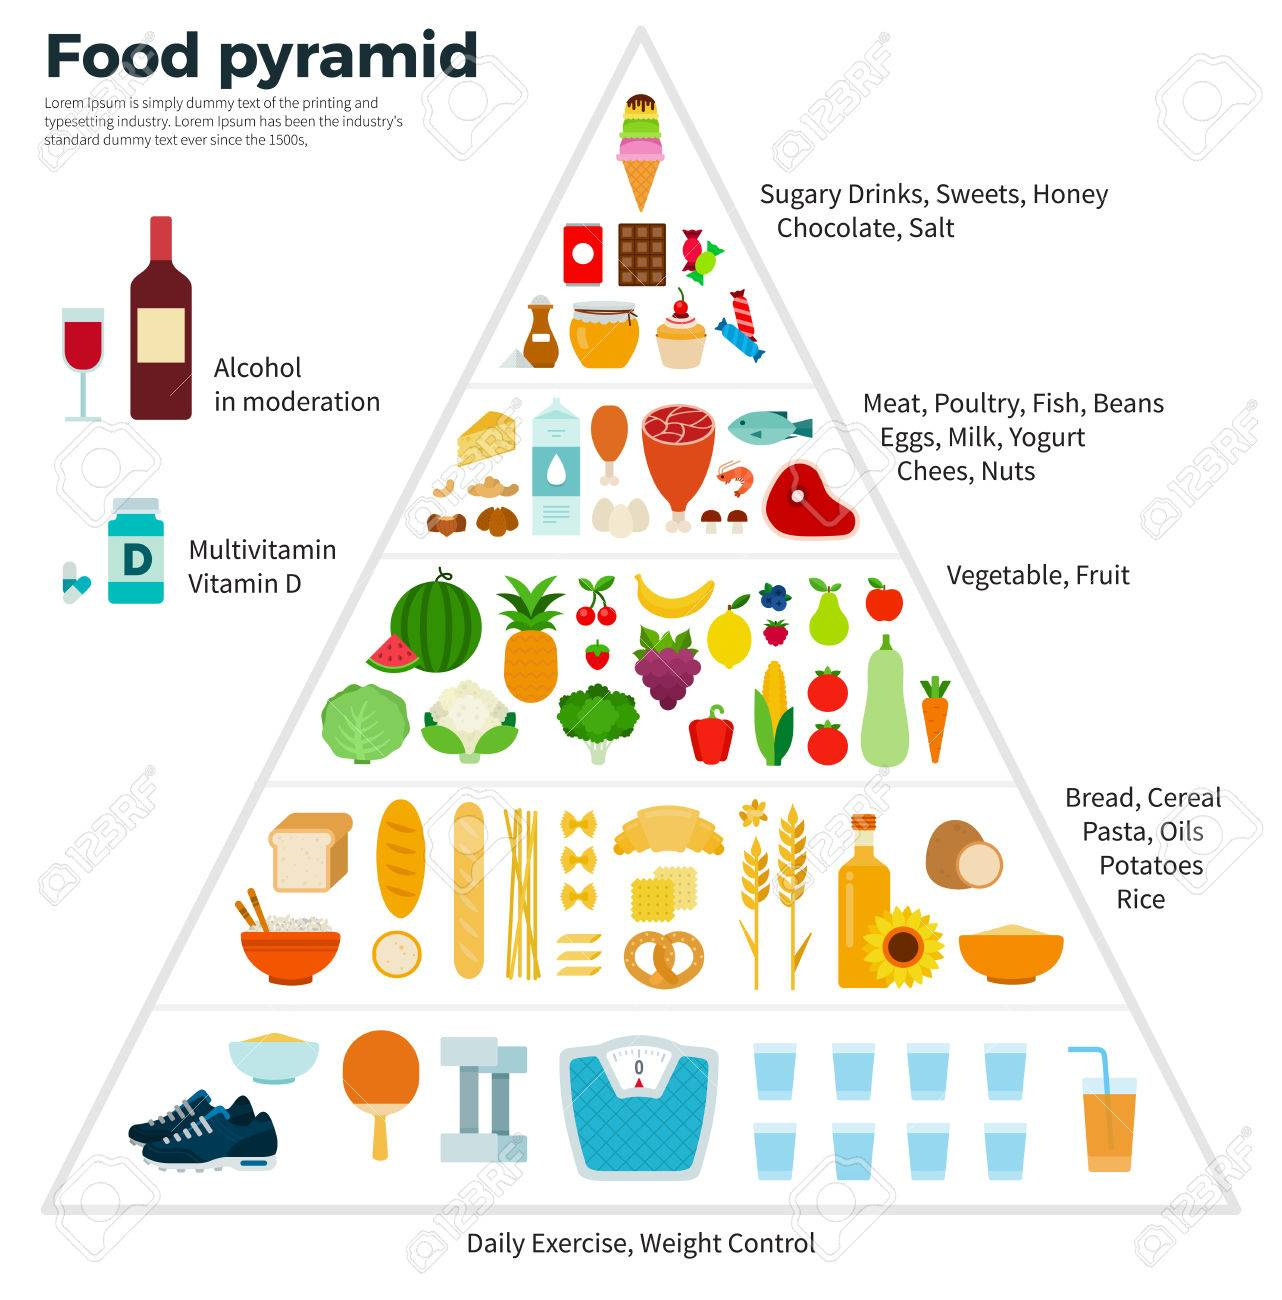 Healthy Eating Concept Food Guide Pyramid Of Vegetables Fruits Grains Vitamins